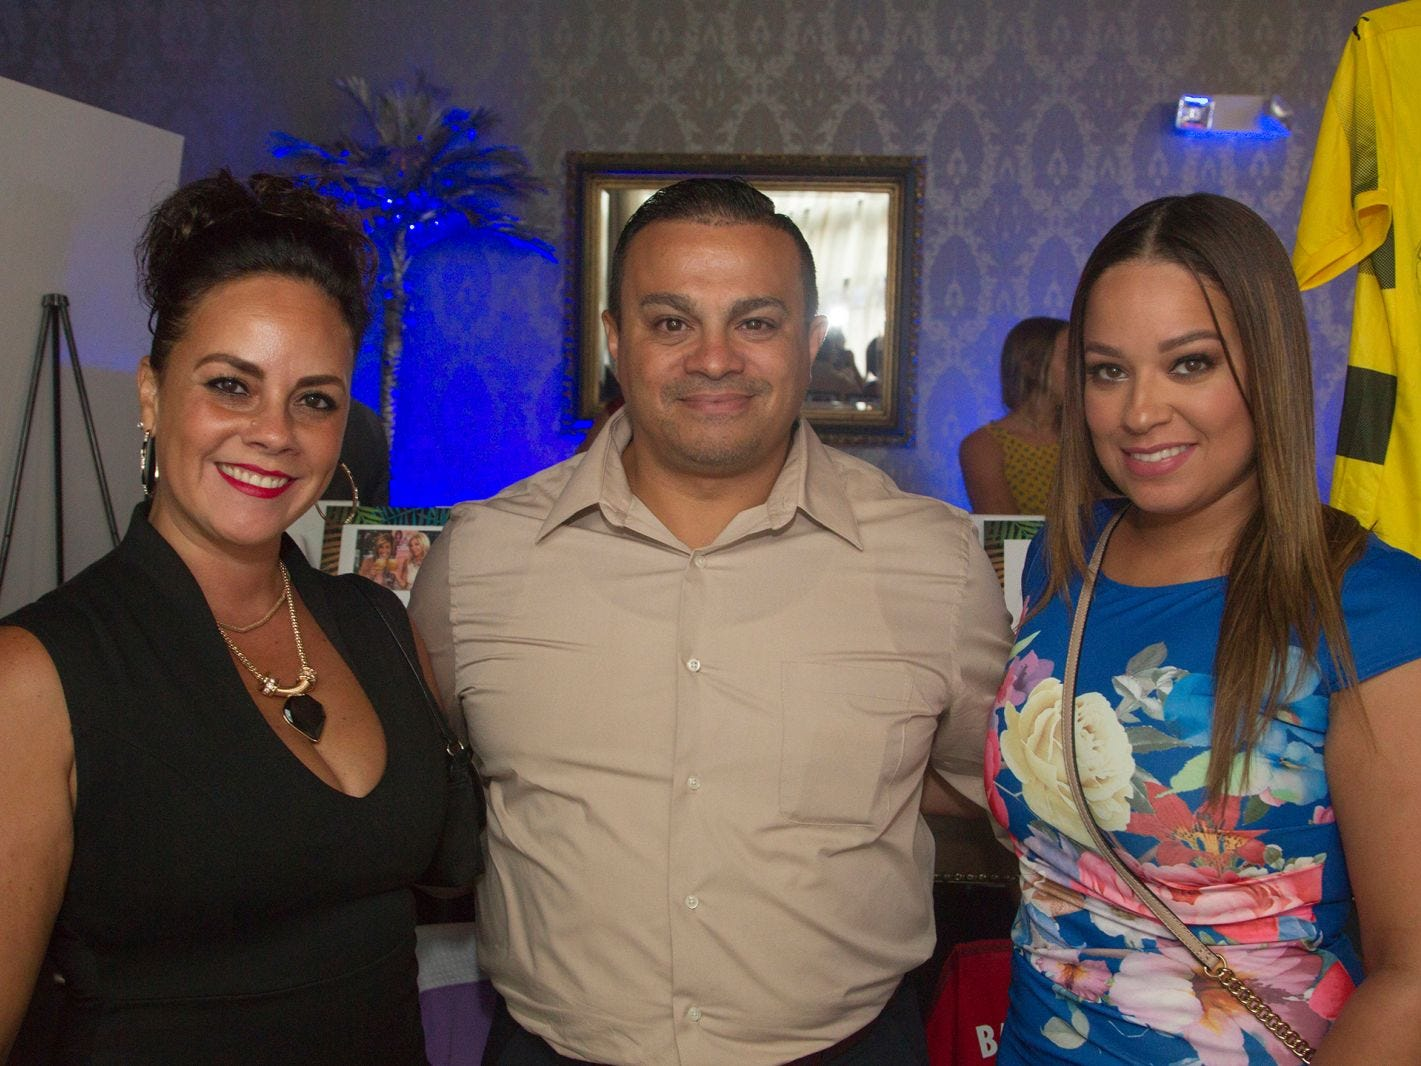 Millie Vasquez, Oscar Morales, Maelene Mendez. Summer Samba Night benefitting Tackle Kids Cancer hosted by Cara Robles, Luis Robles (NY Red Bulls Goalkeeper), Jennifer Farber, and Dr. Michael Farber at Son Cubano in West New York. 08/08/2018